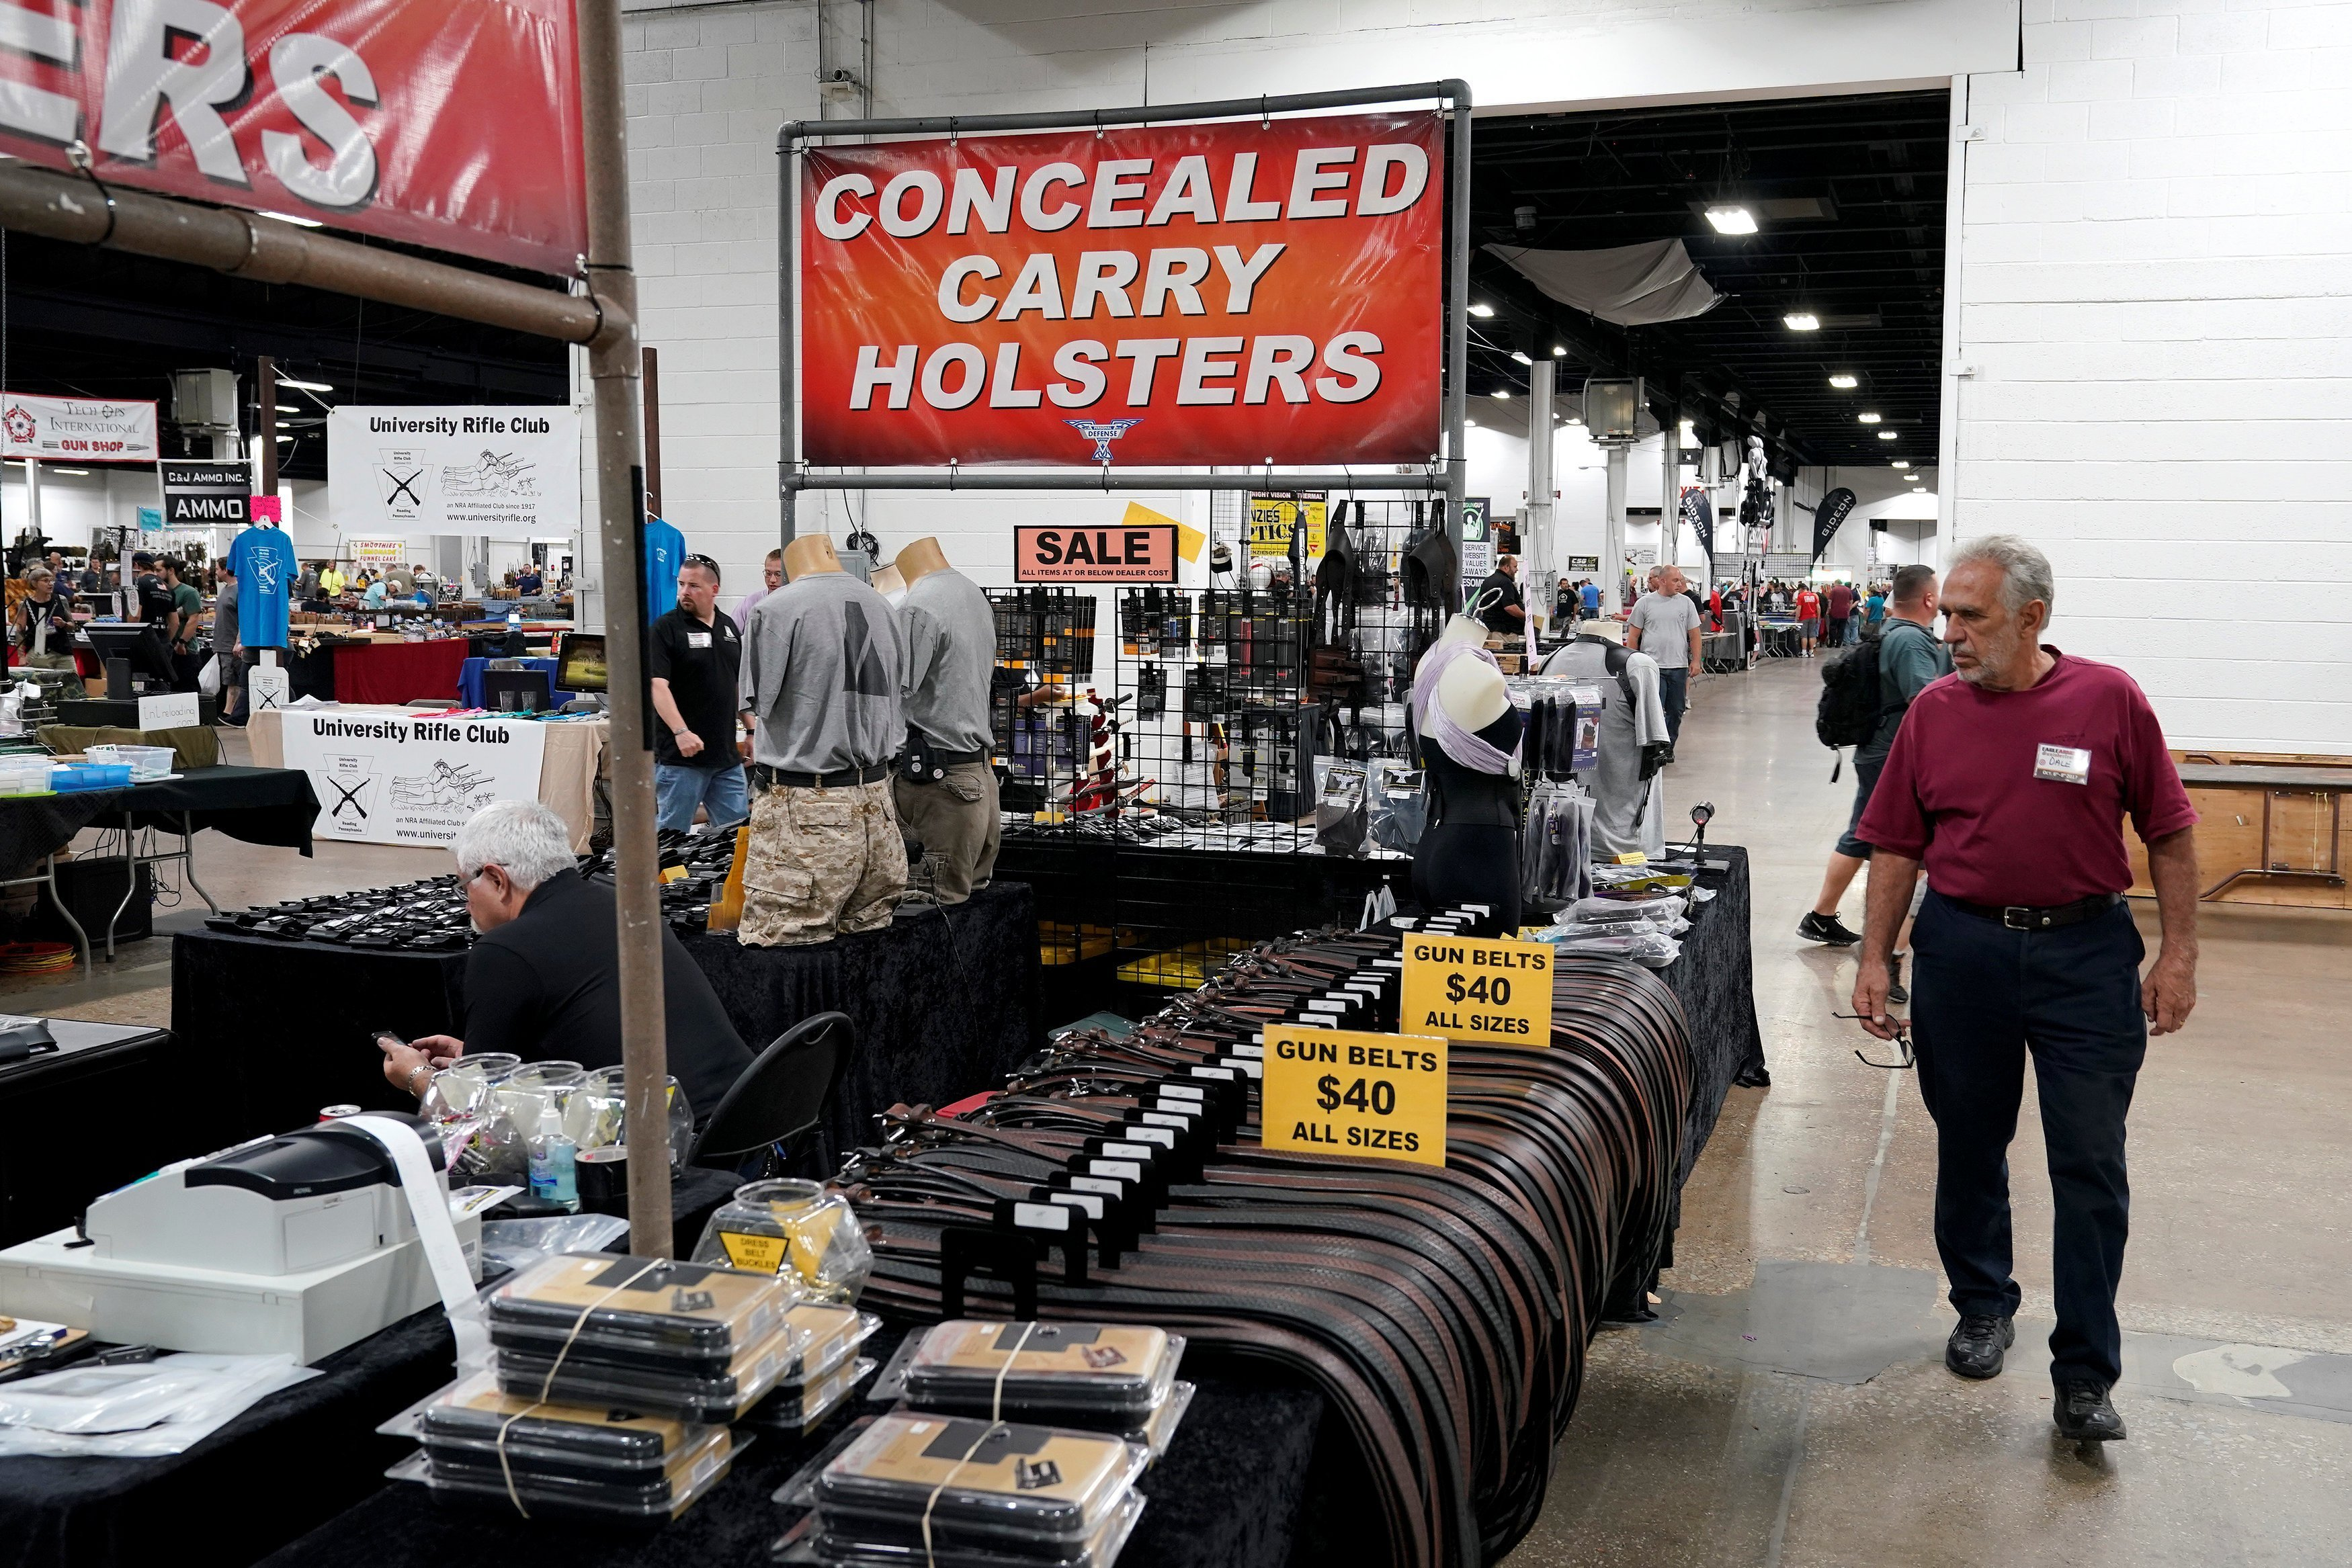 Gun show- concealed carry holsters